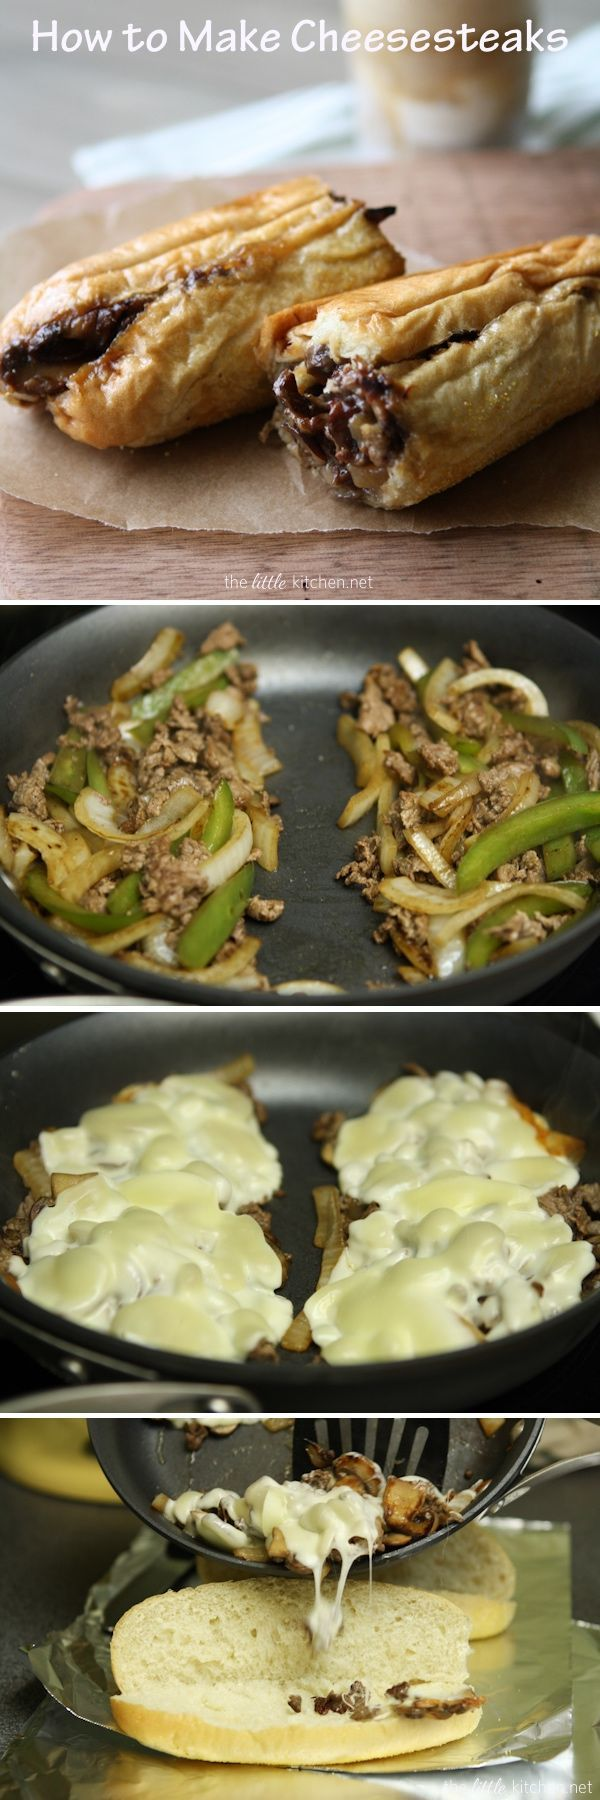 Seriously the best Cheesesteaks ever! There's a little secret shared on how to make them the best & of course the best cut of beef to use too! from TheLittleKitchen.net